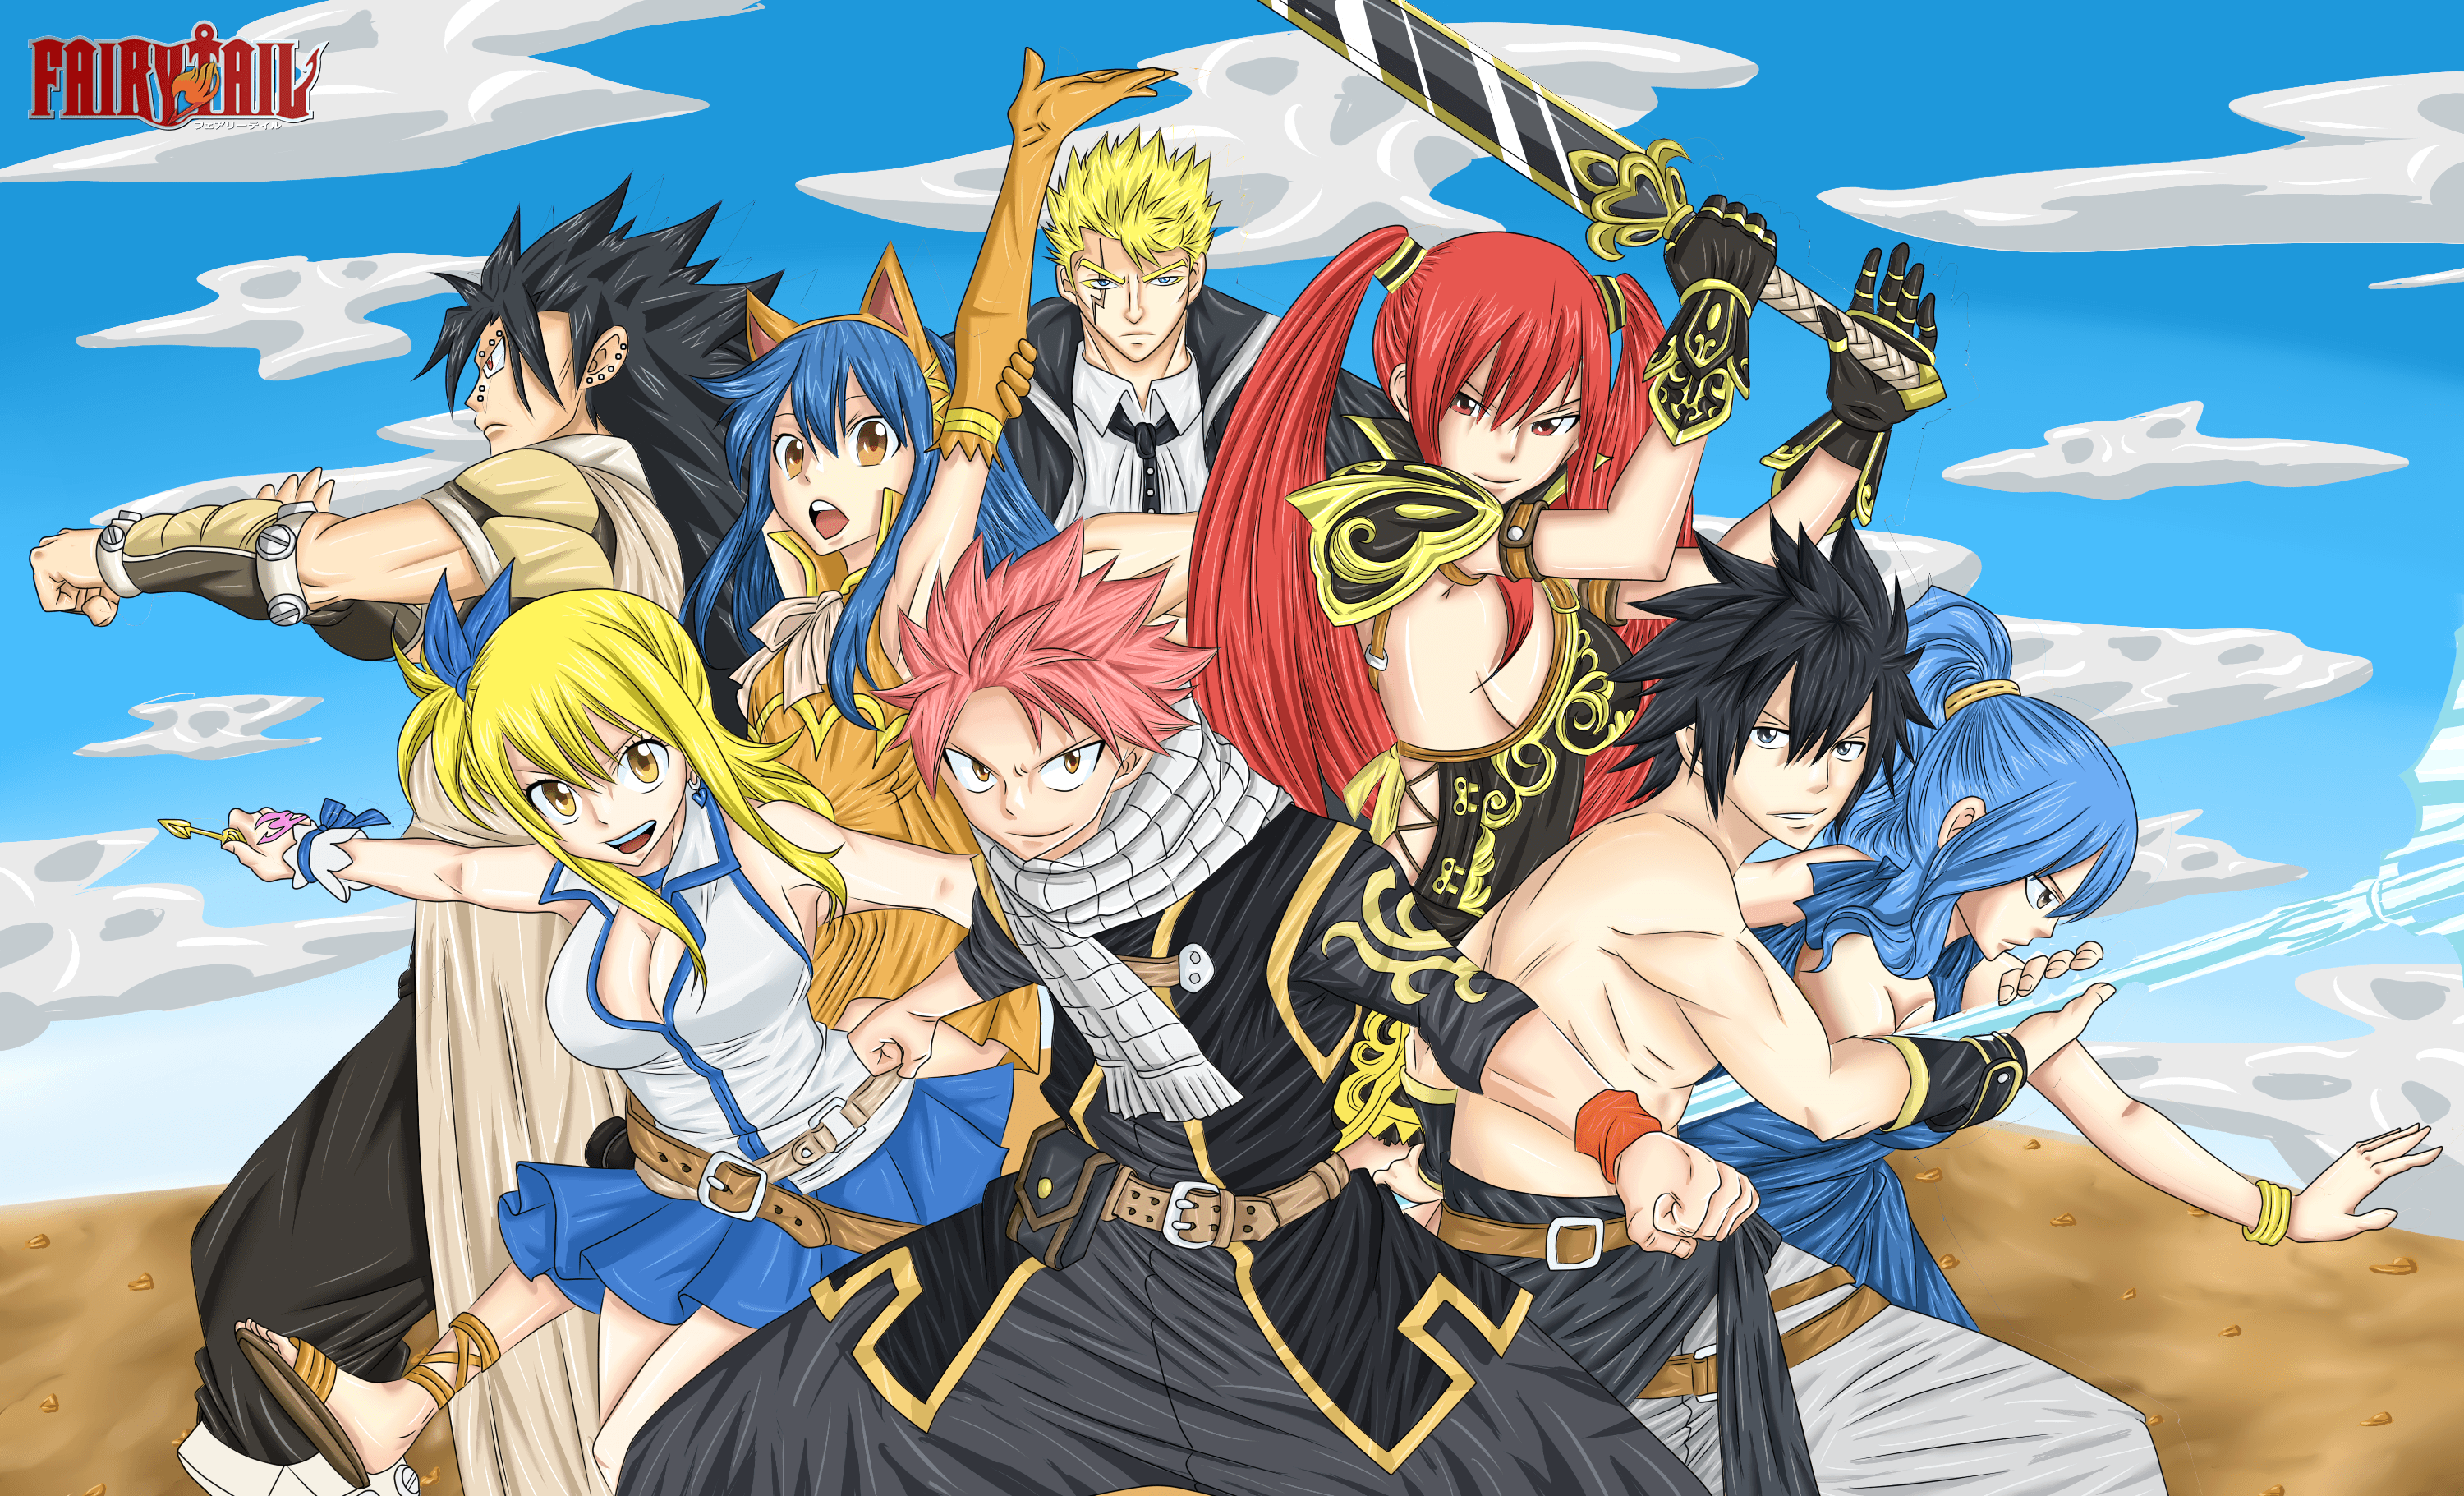 3000x1821 Fairytail Wallpaper (23)